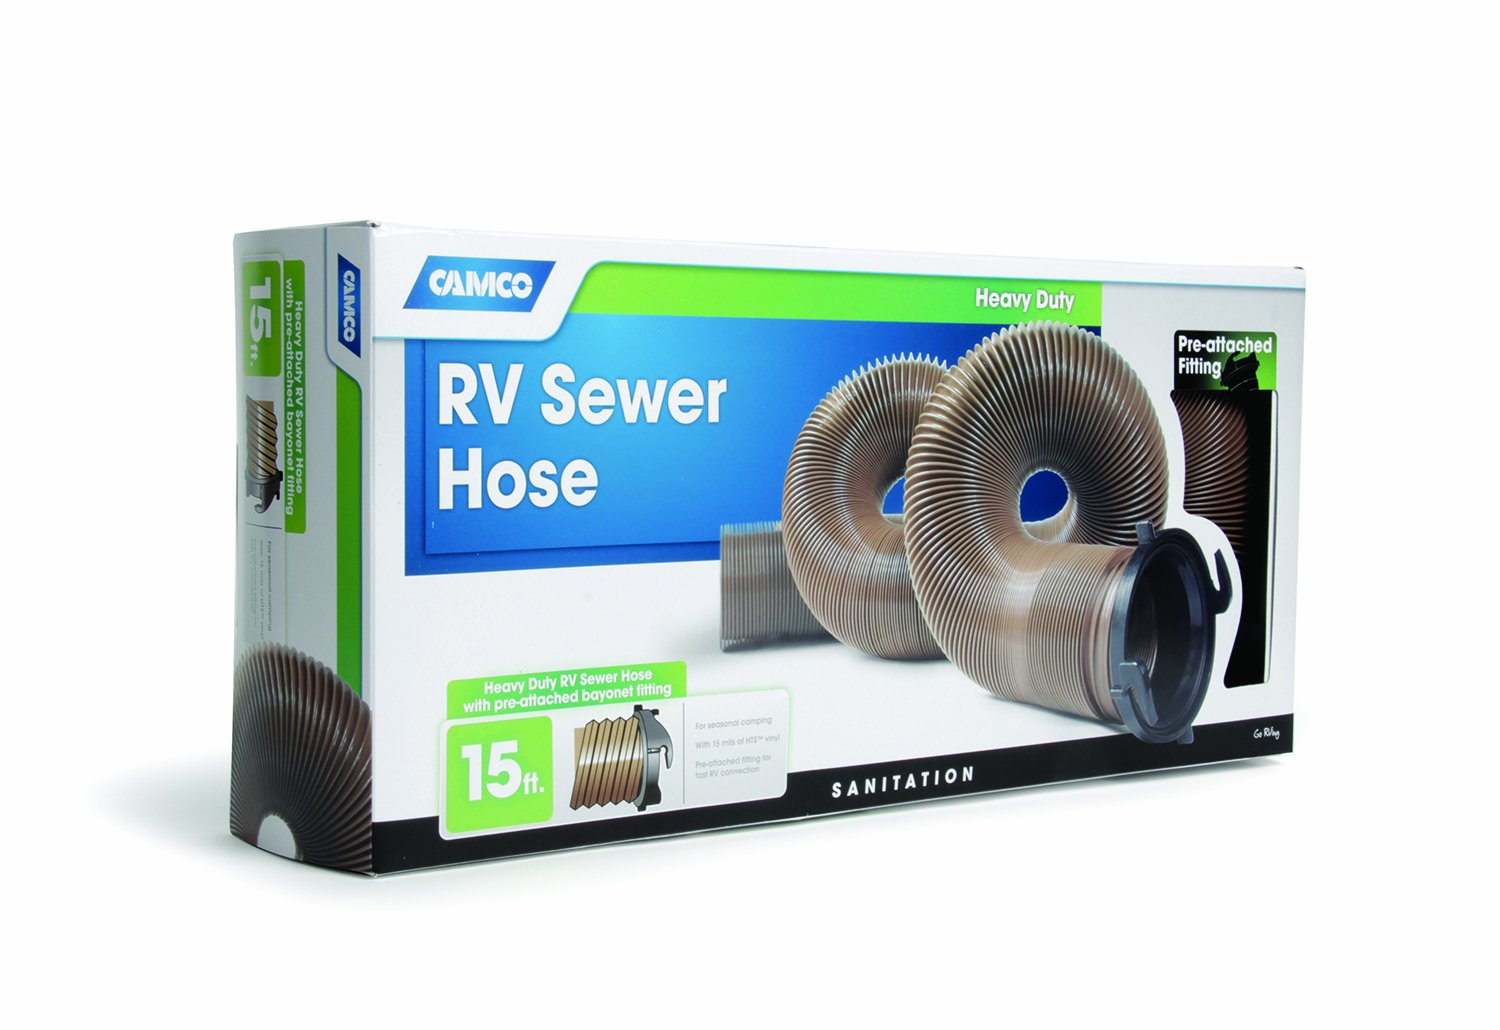 Camco 39691 HTS 15' Heavy-Duty Sewer Hose with Straight Hose Adapter